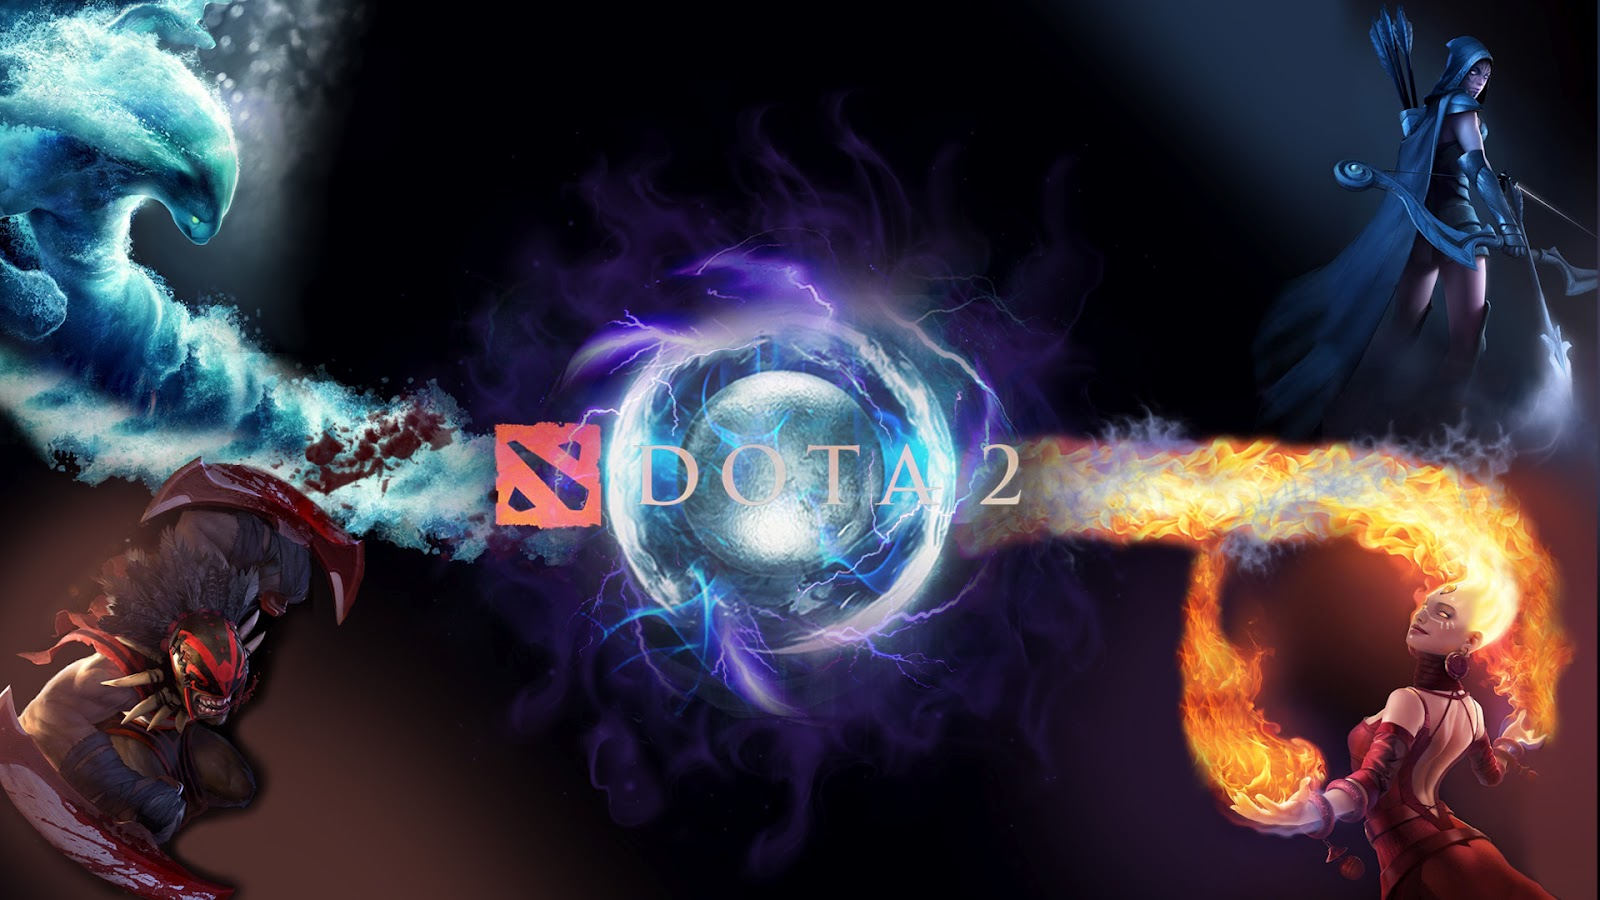 Dota 2 Iphone 4 Wallpaper | Halv 8